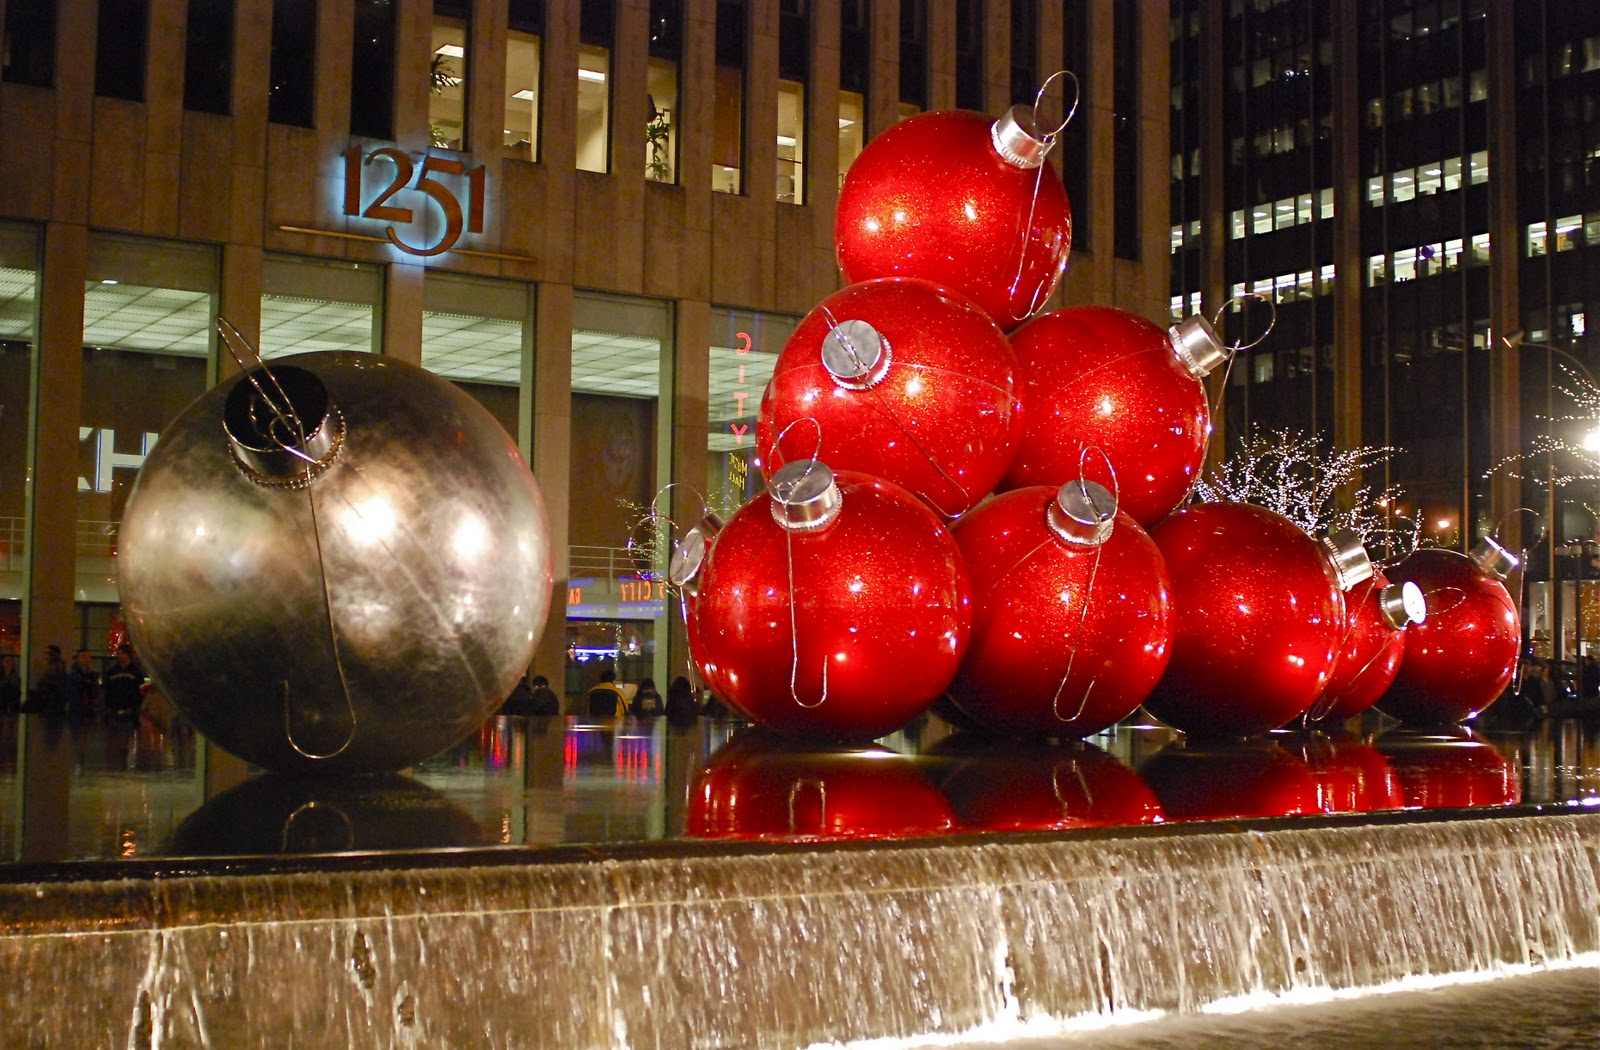 giant christmas ornaments at 1251 sixth avenue - Red Christmas Decorations